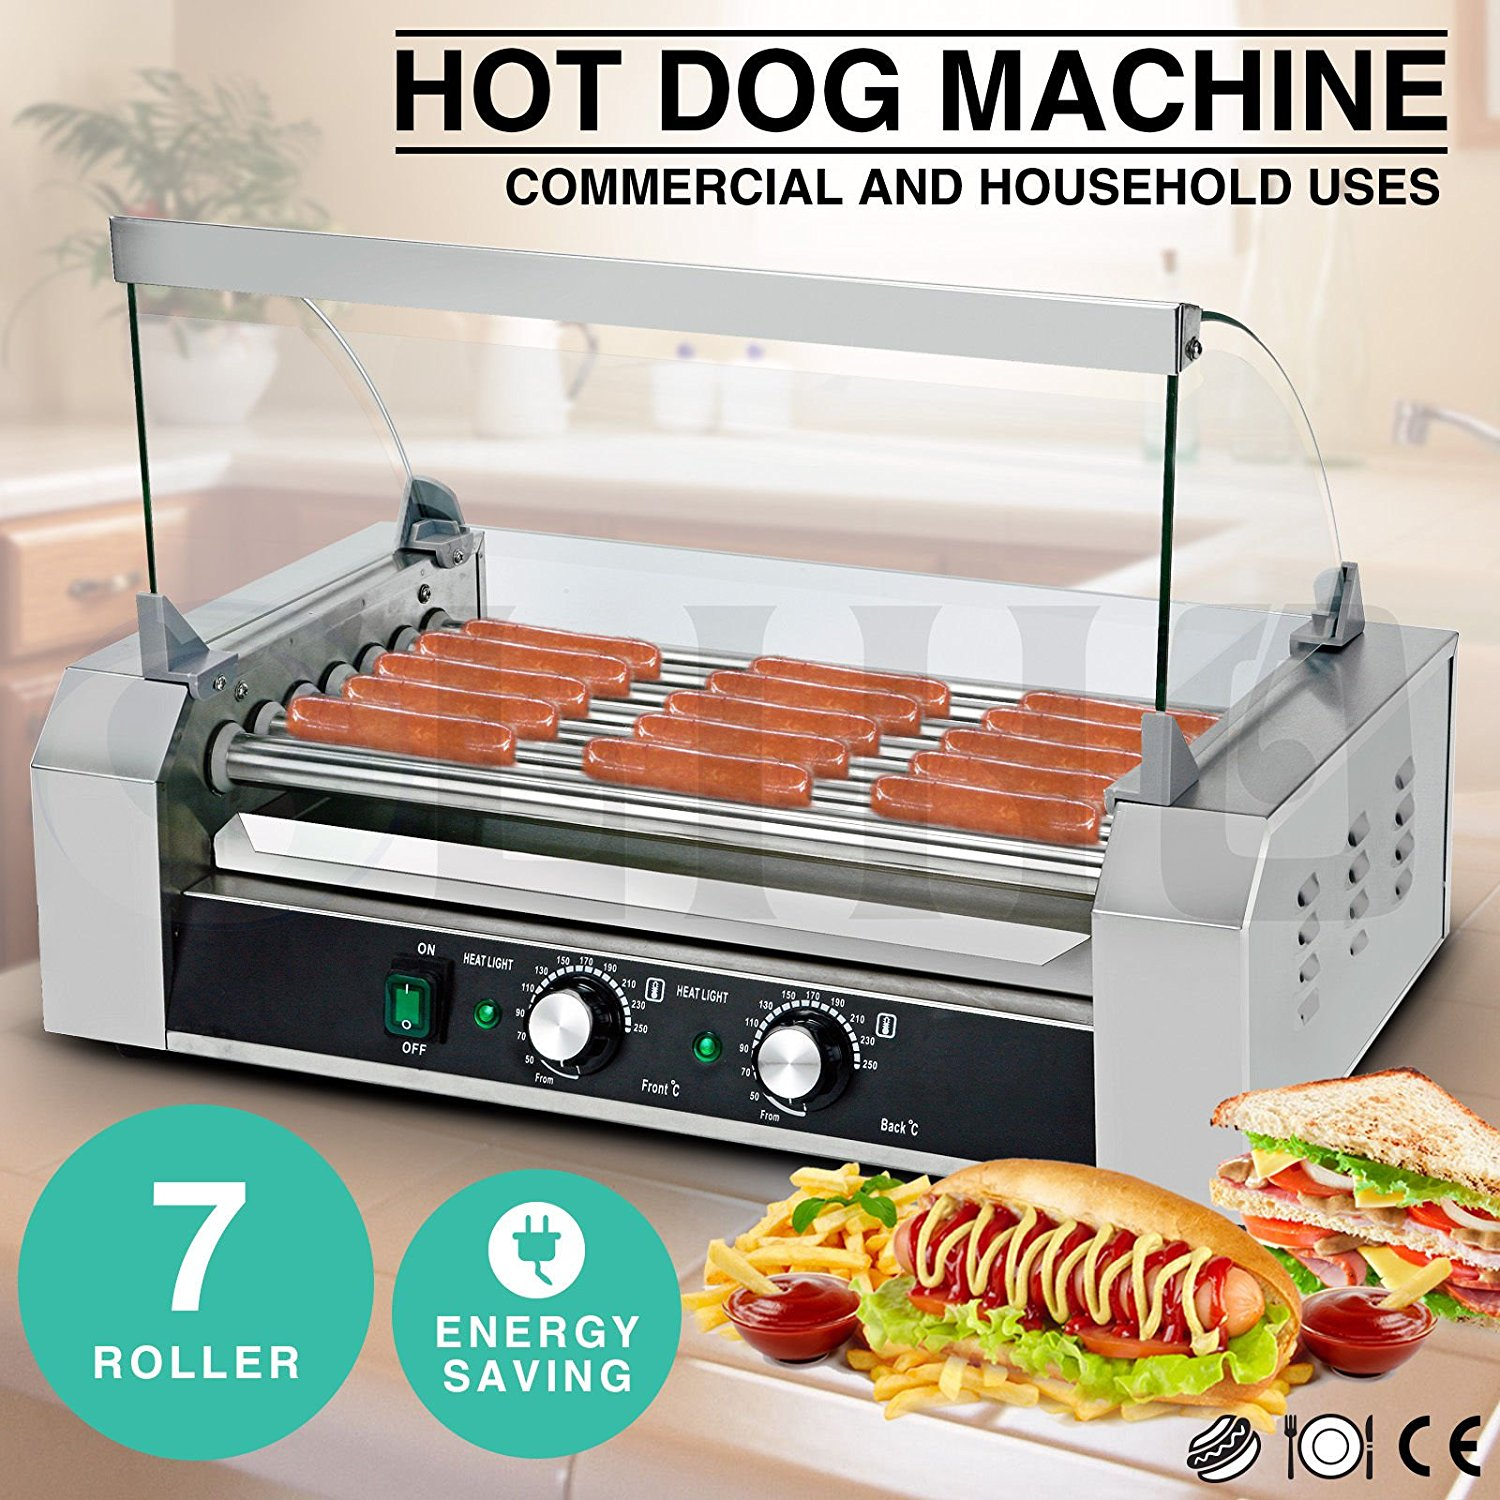 Roller Commercial Hotdog 7 Roller Grill Hot Dog Cooker Machine